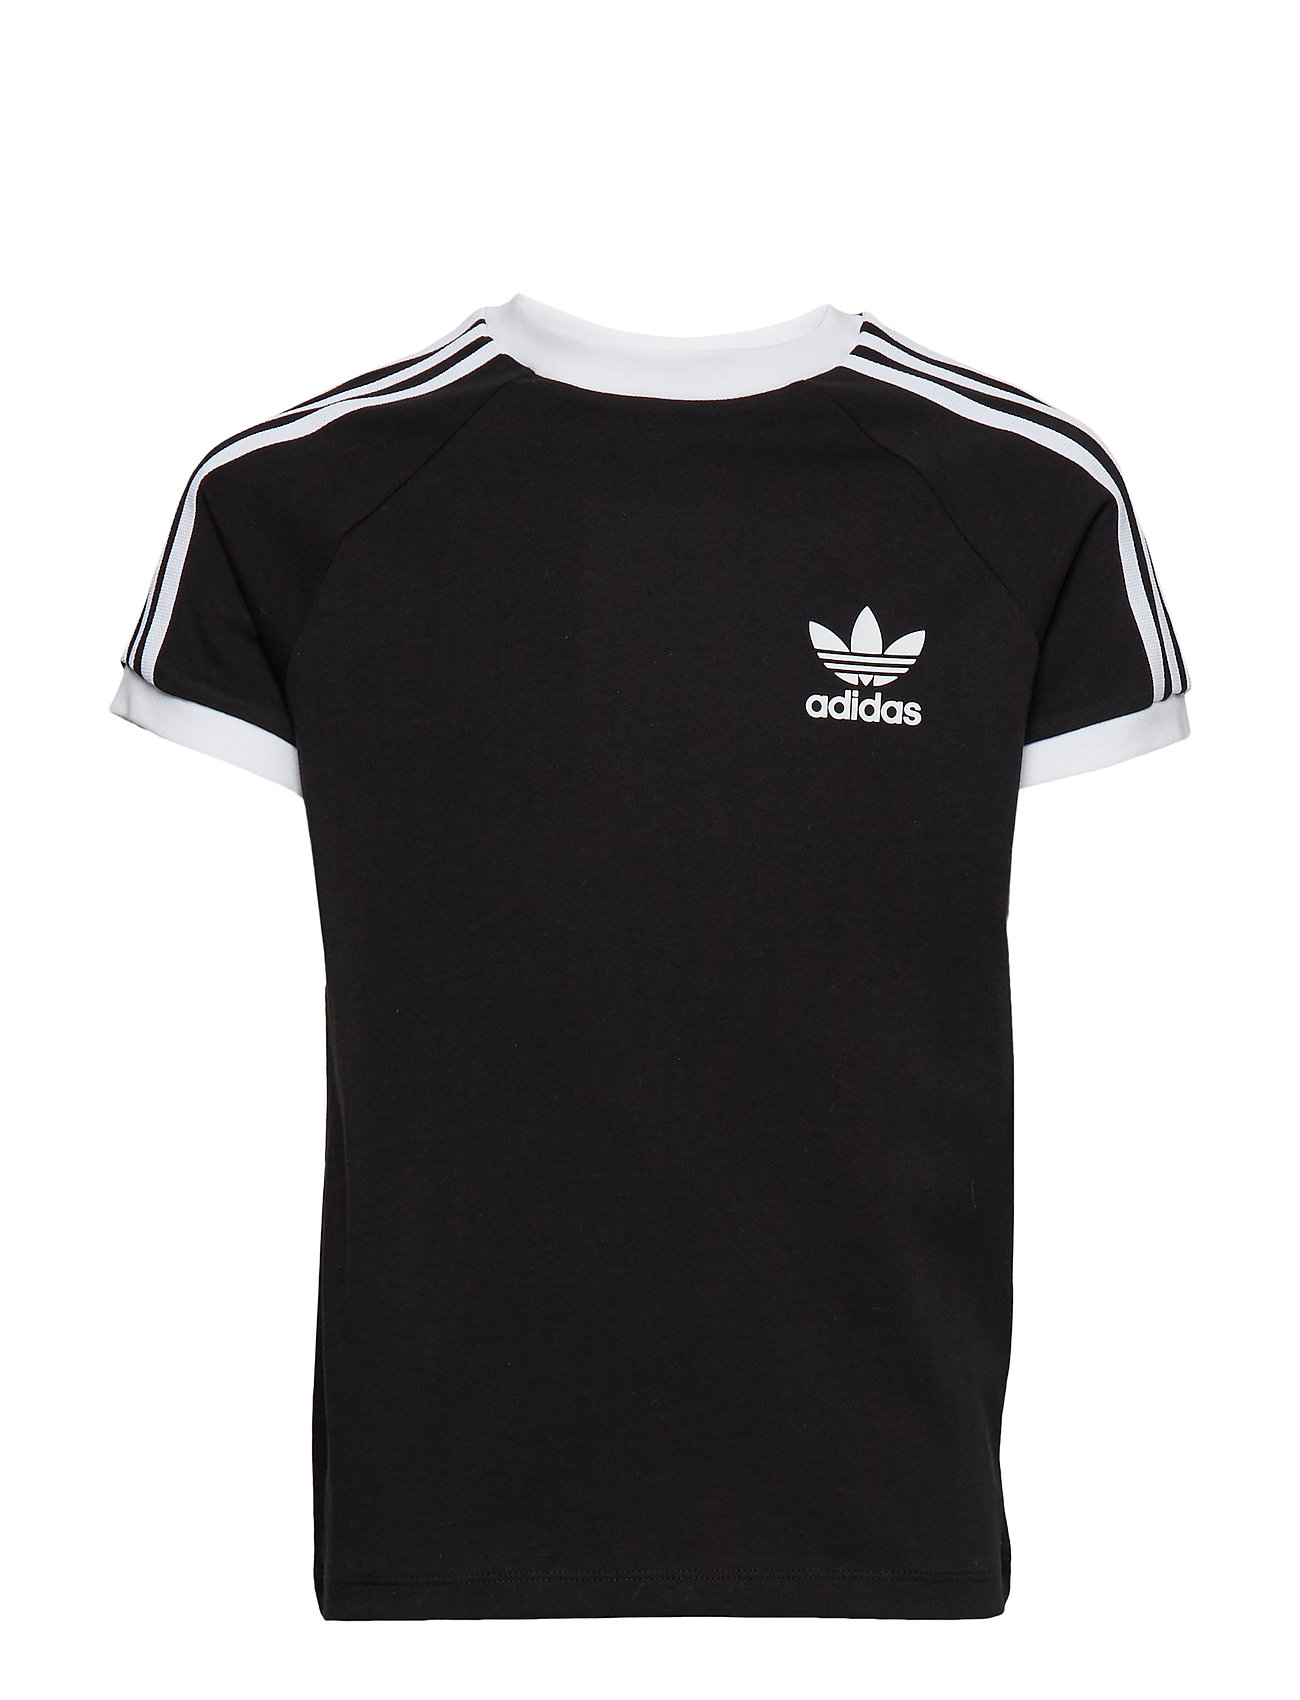 adidas Originals 3STRIPES TEE - BLACK/WHITE